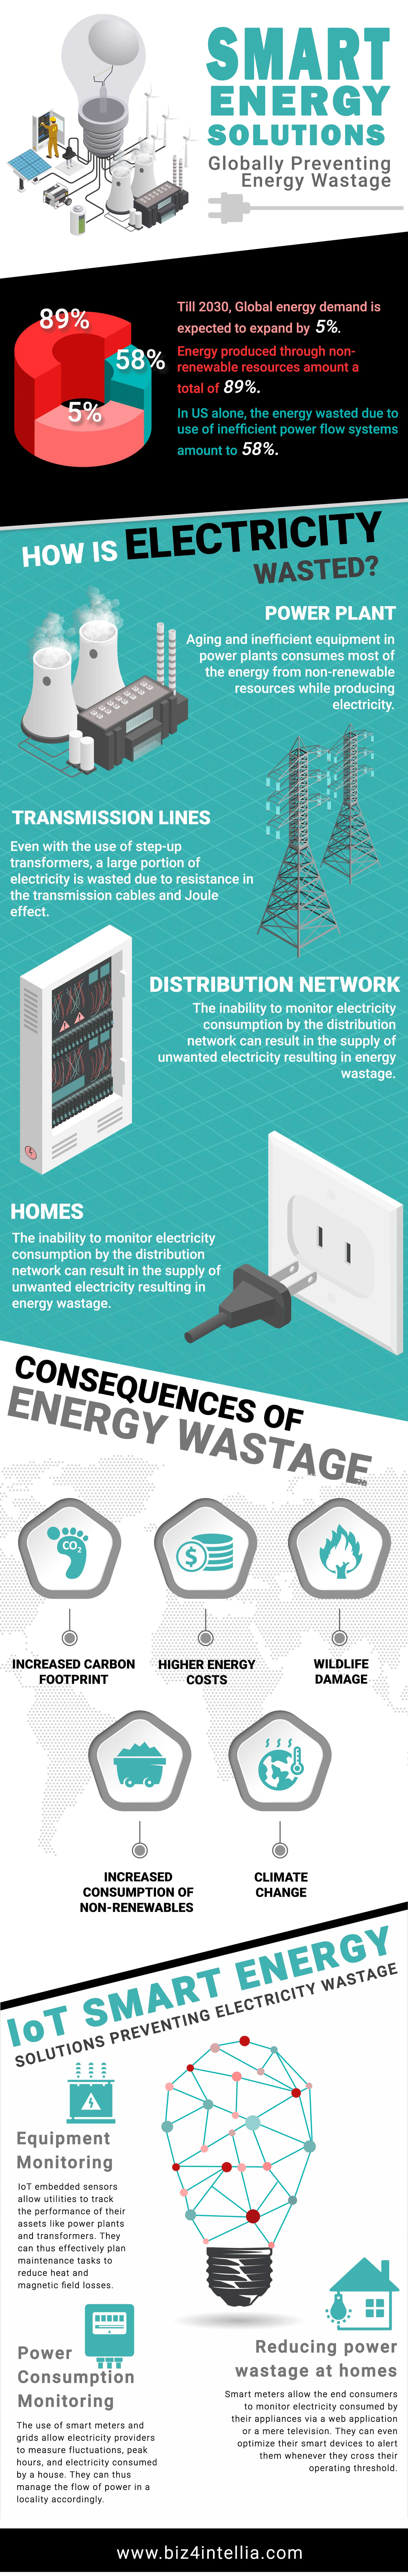 smart-energy-solutions-globally-preventing-energy-wastage